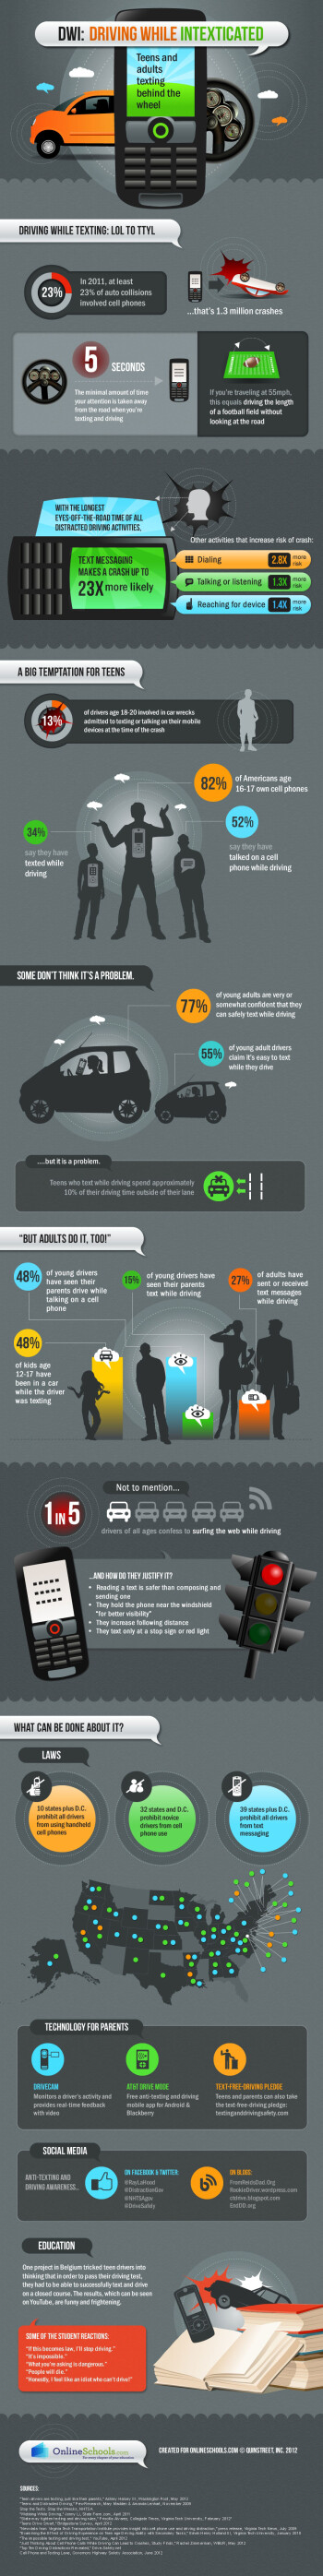 A sobering reminder of the dangers of texting and driving [Infographic]